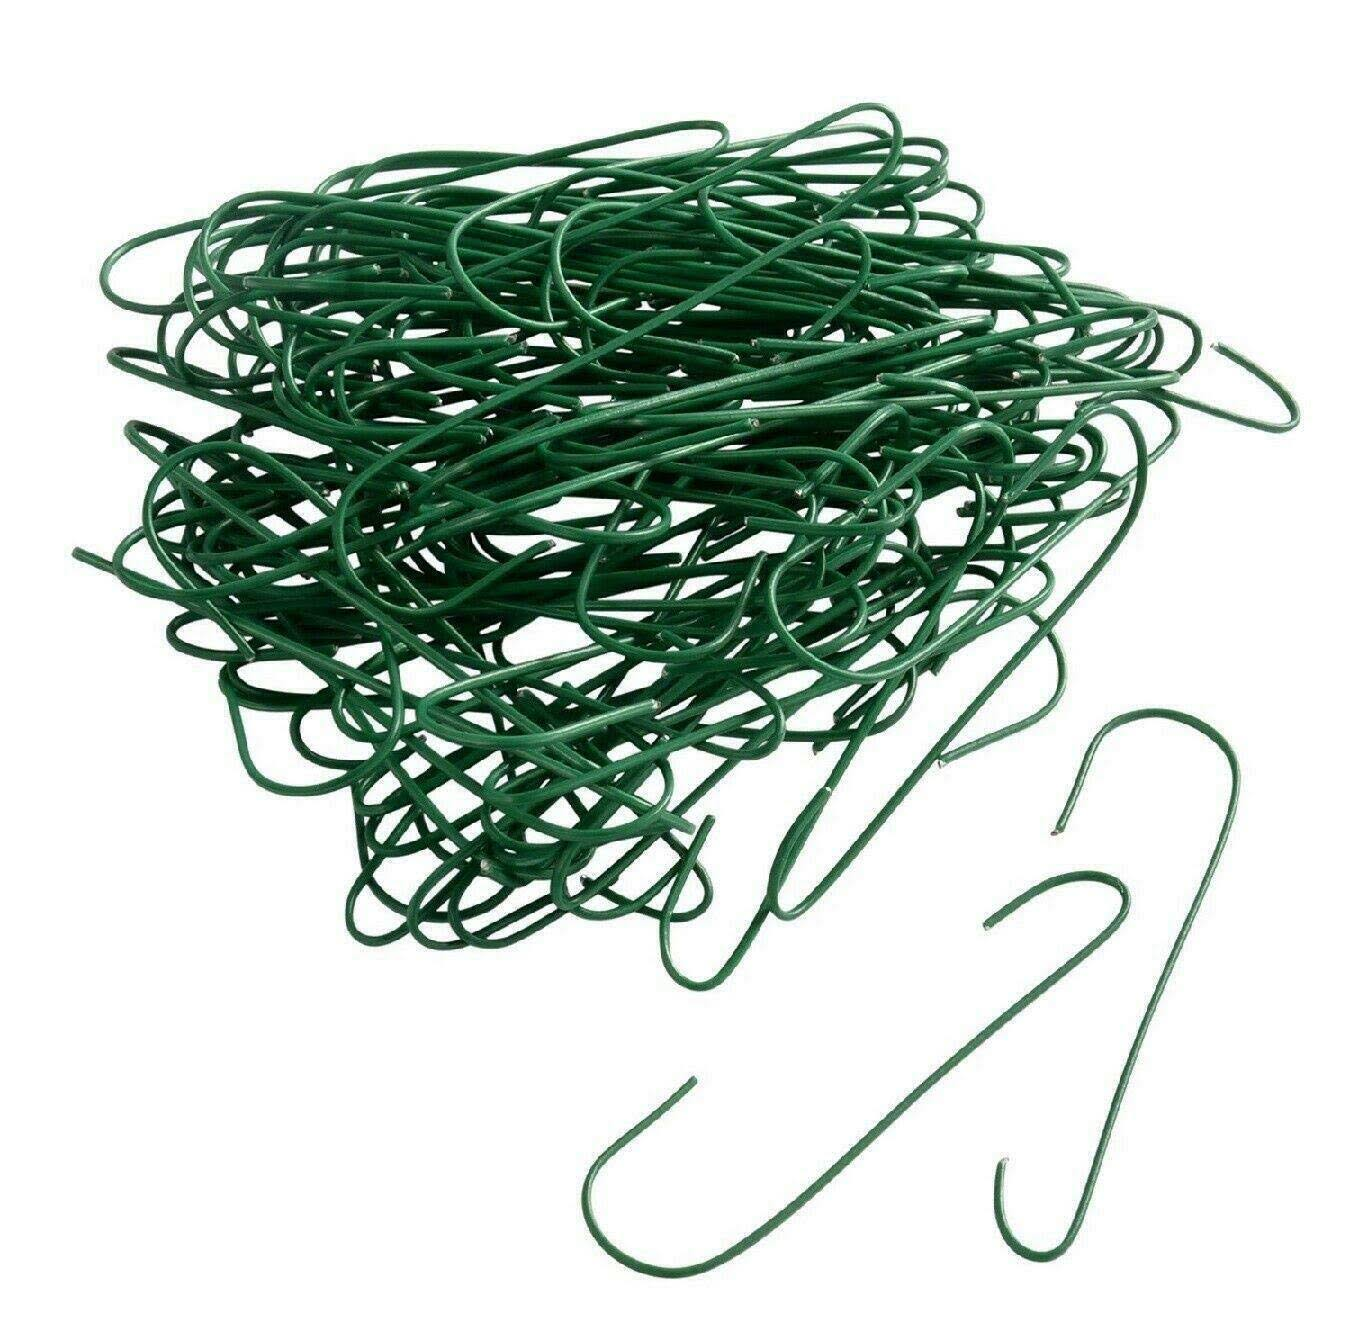 Premier Tree Decoration Hooks 100 Pack